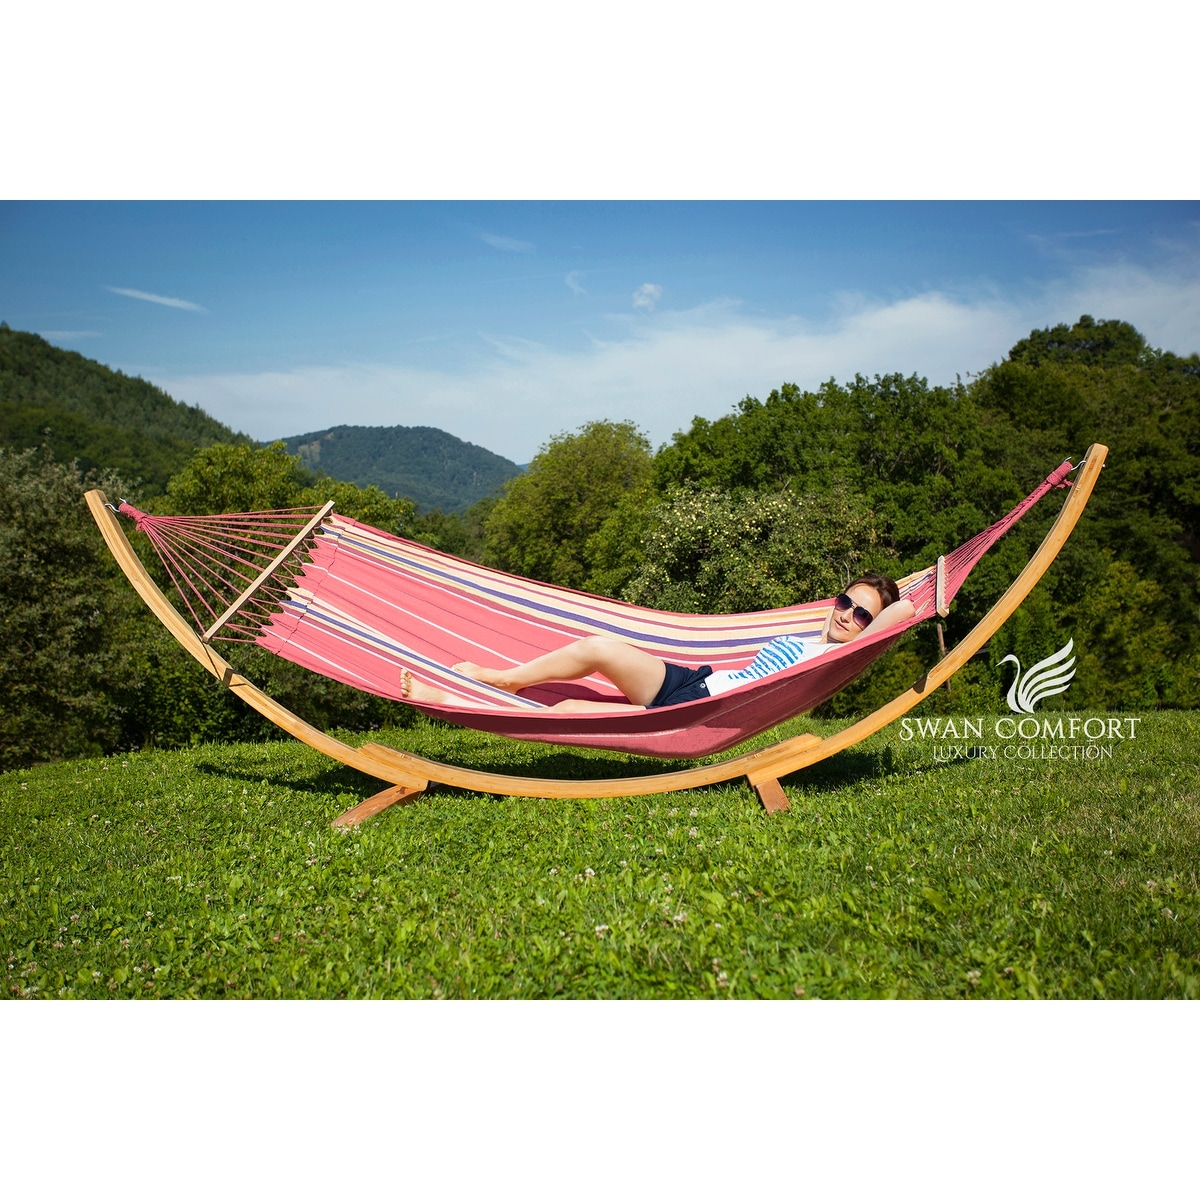 Swan Comfort Extra Heavy Duty Swing Cotton Hammock - Thumbnail 0